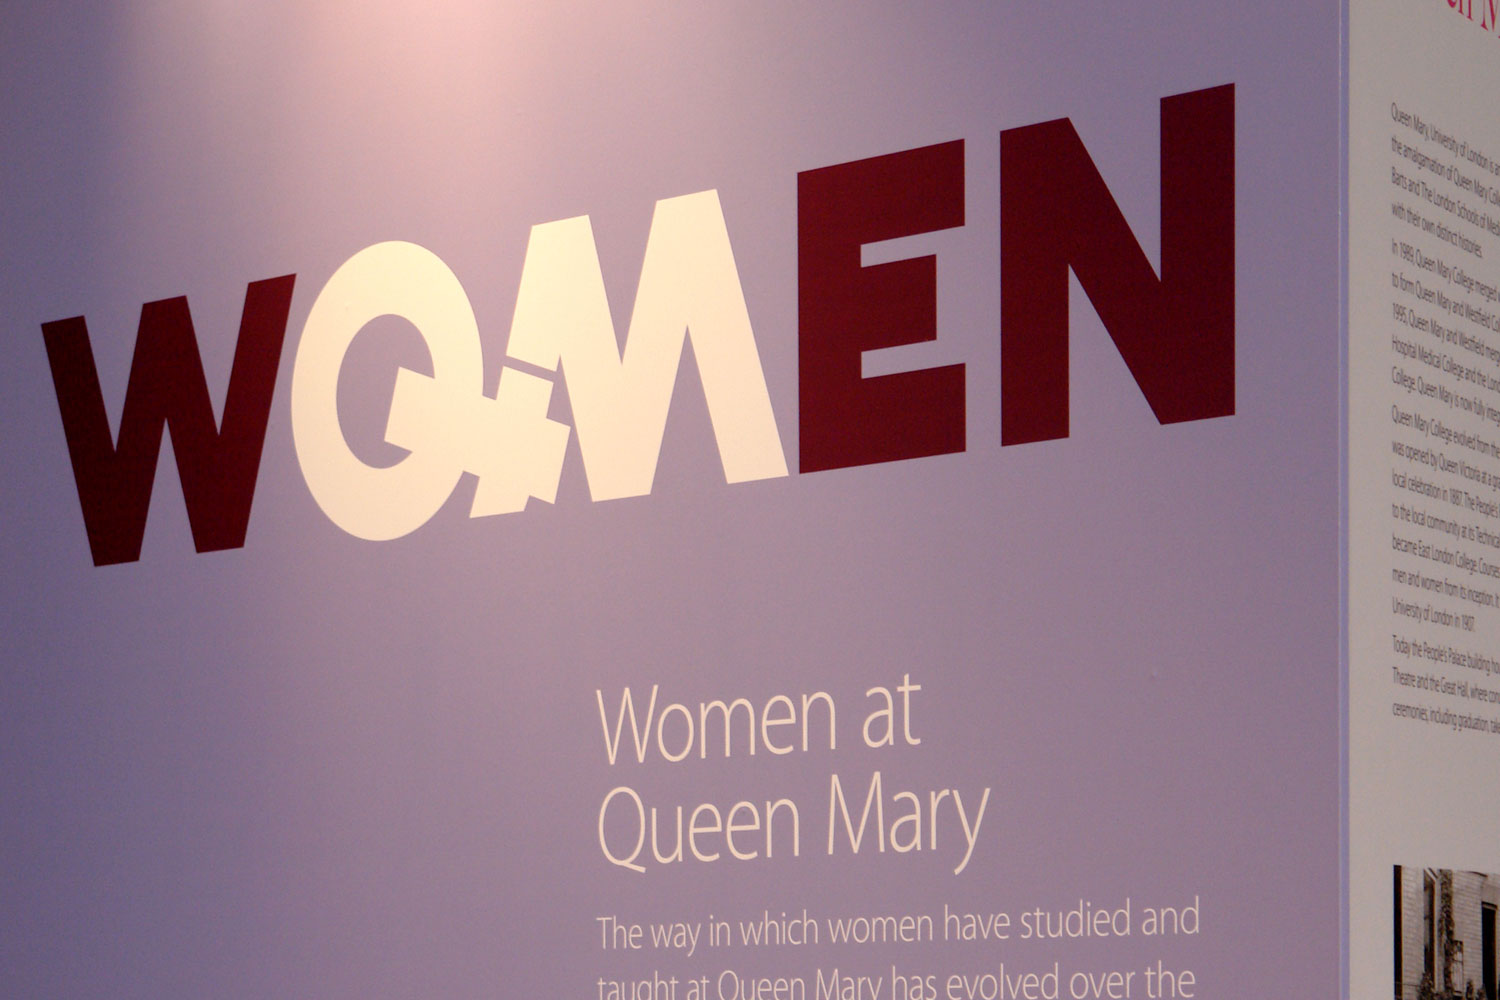 Our logo for the exhibition incorporated the Venus symbol, turning the OM in women to QM for Queen Mary